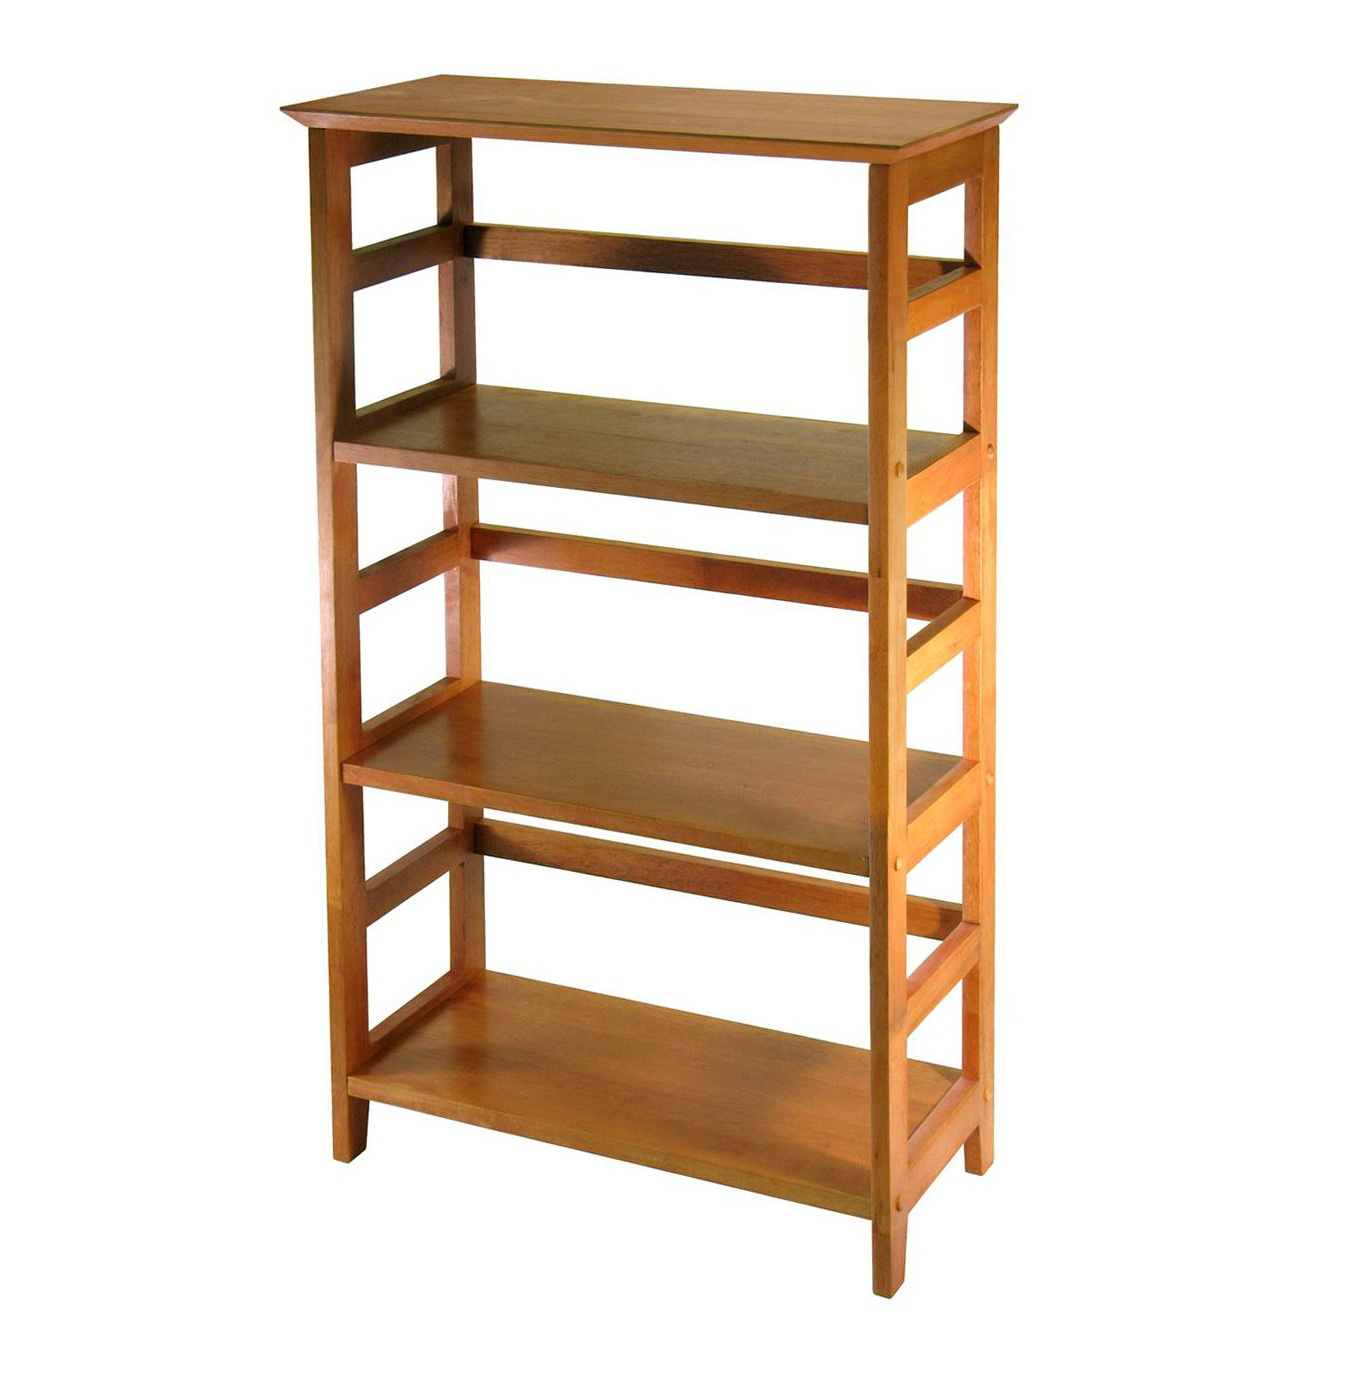 3 Shelf Bookcase Plans